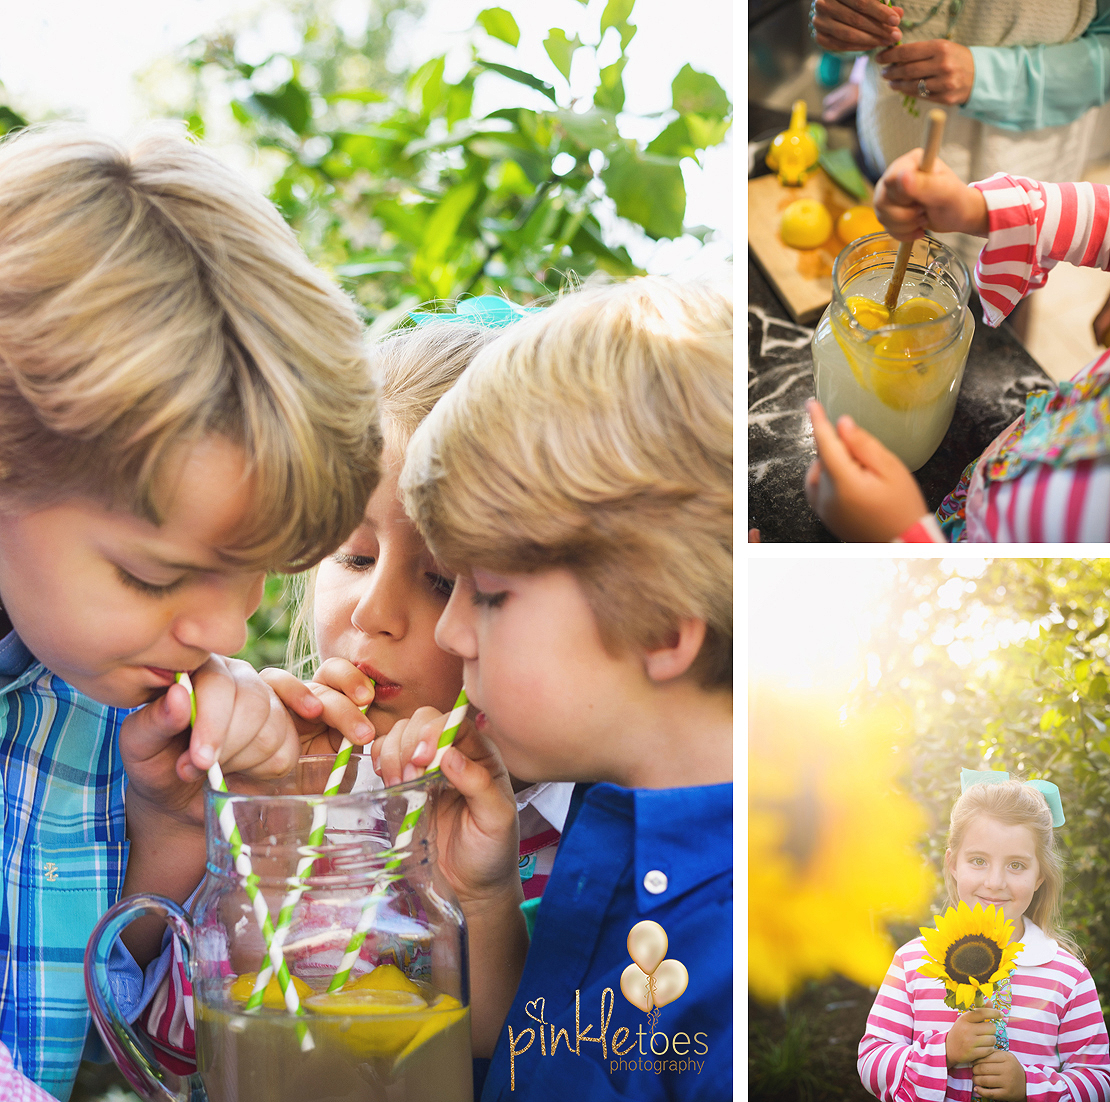 austin-lifestyle-kids-lemonade-pillow-fight-family-photography-14